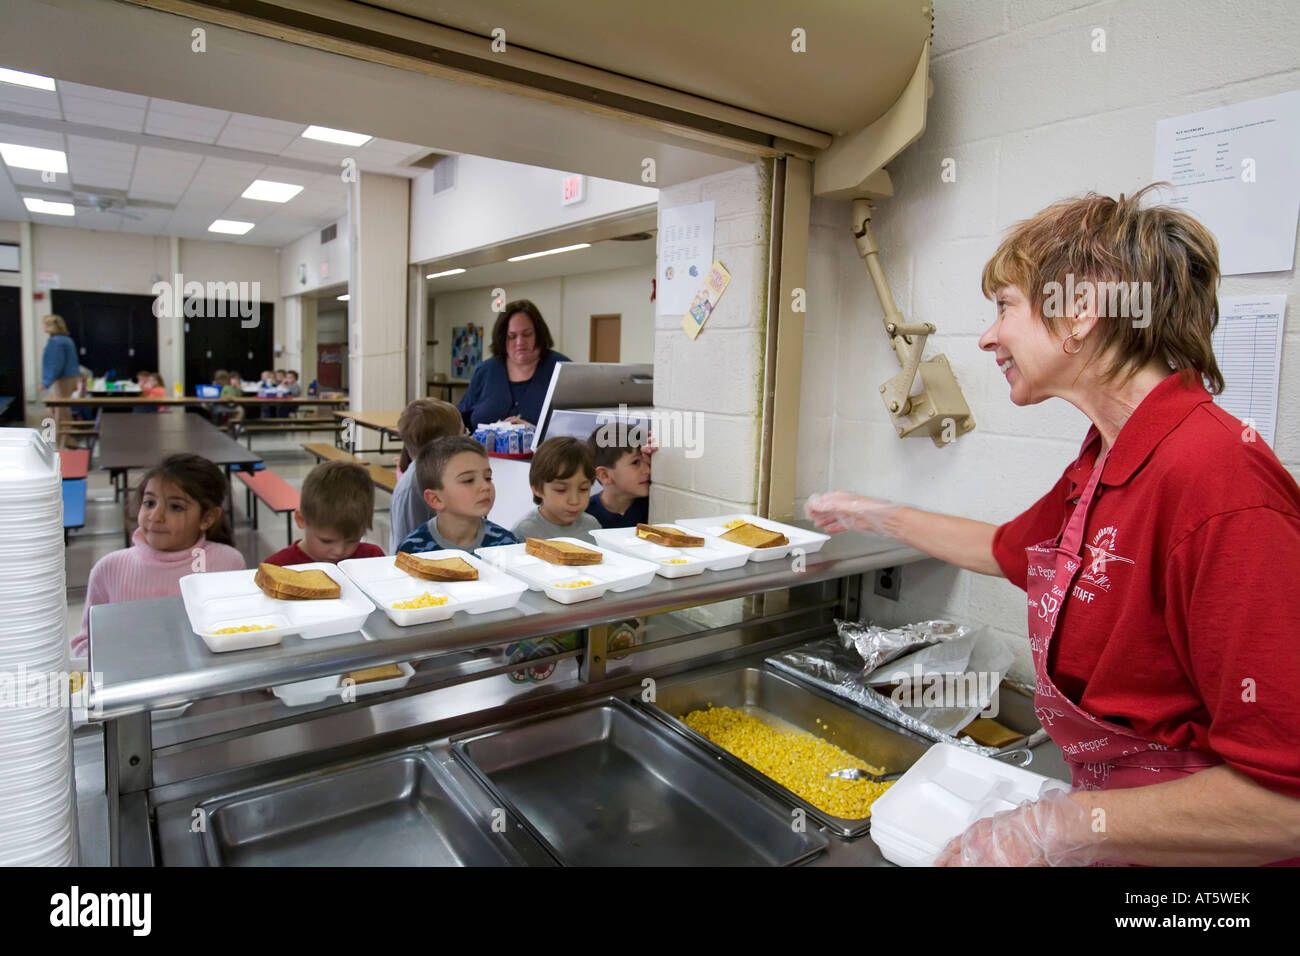 Dearborn Michigan Debra Sabaugh in the cafeteria at Lindbergh Elementary School - Stock Image